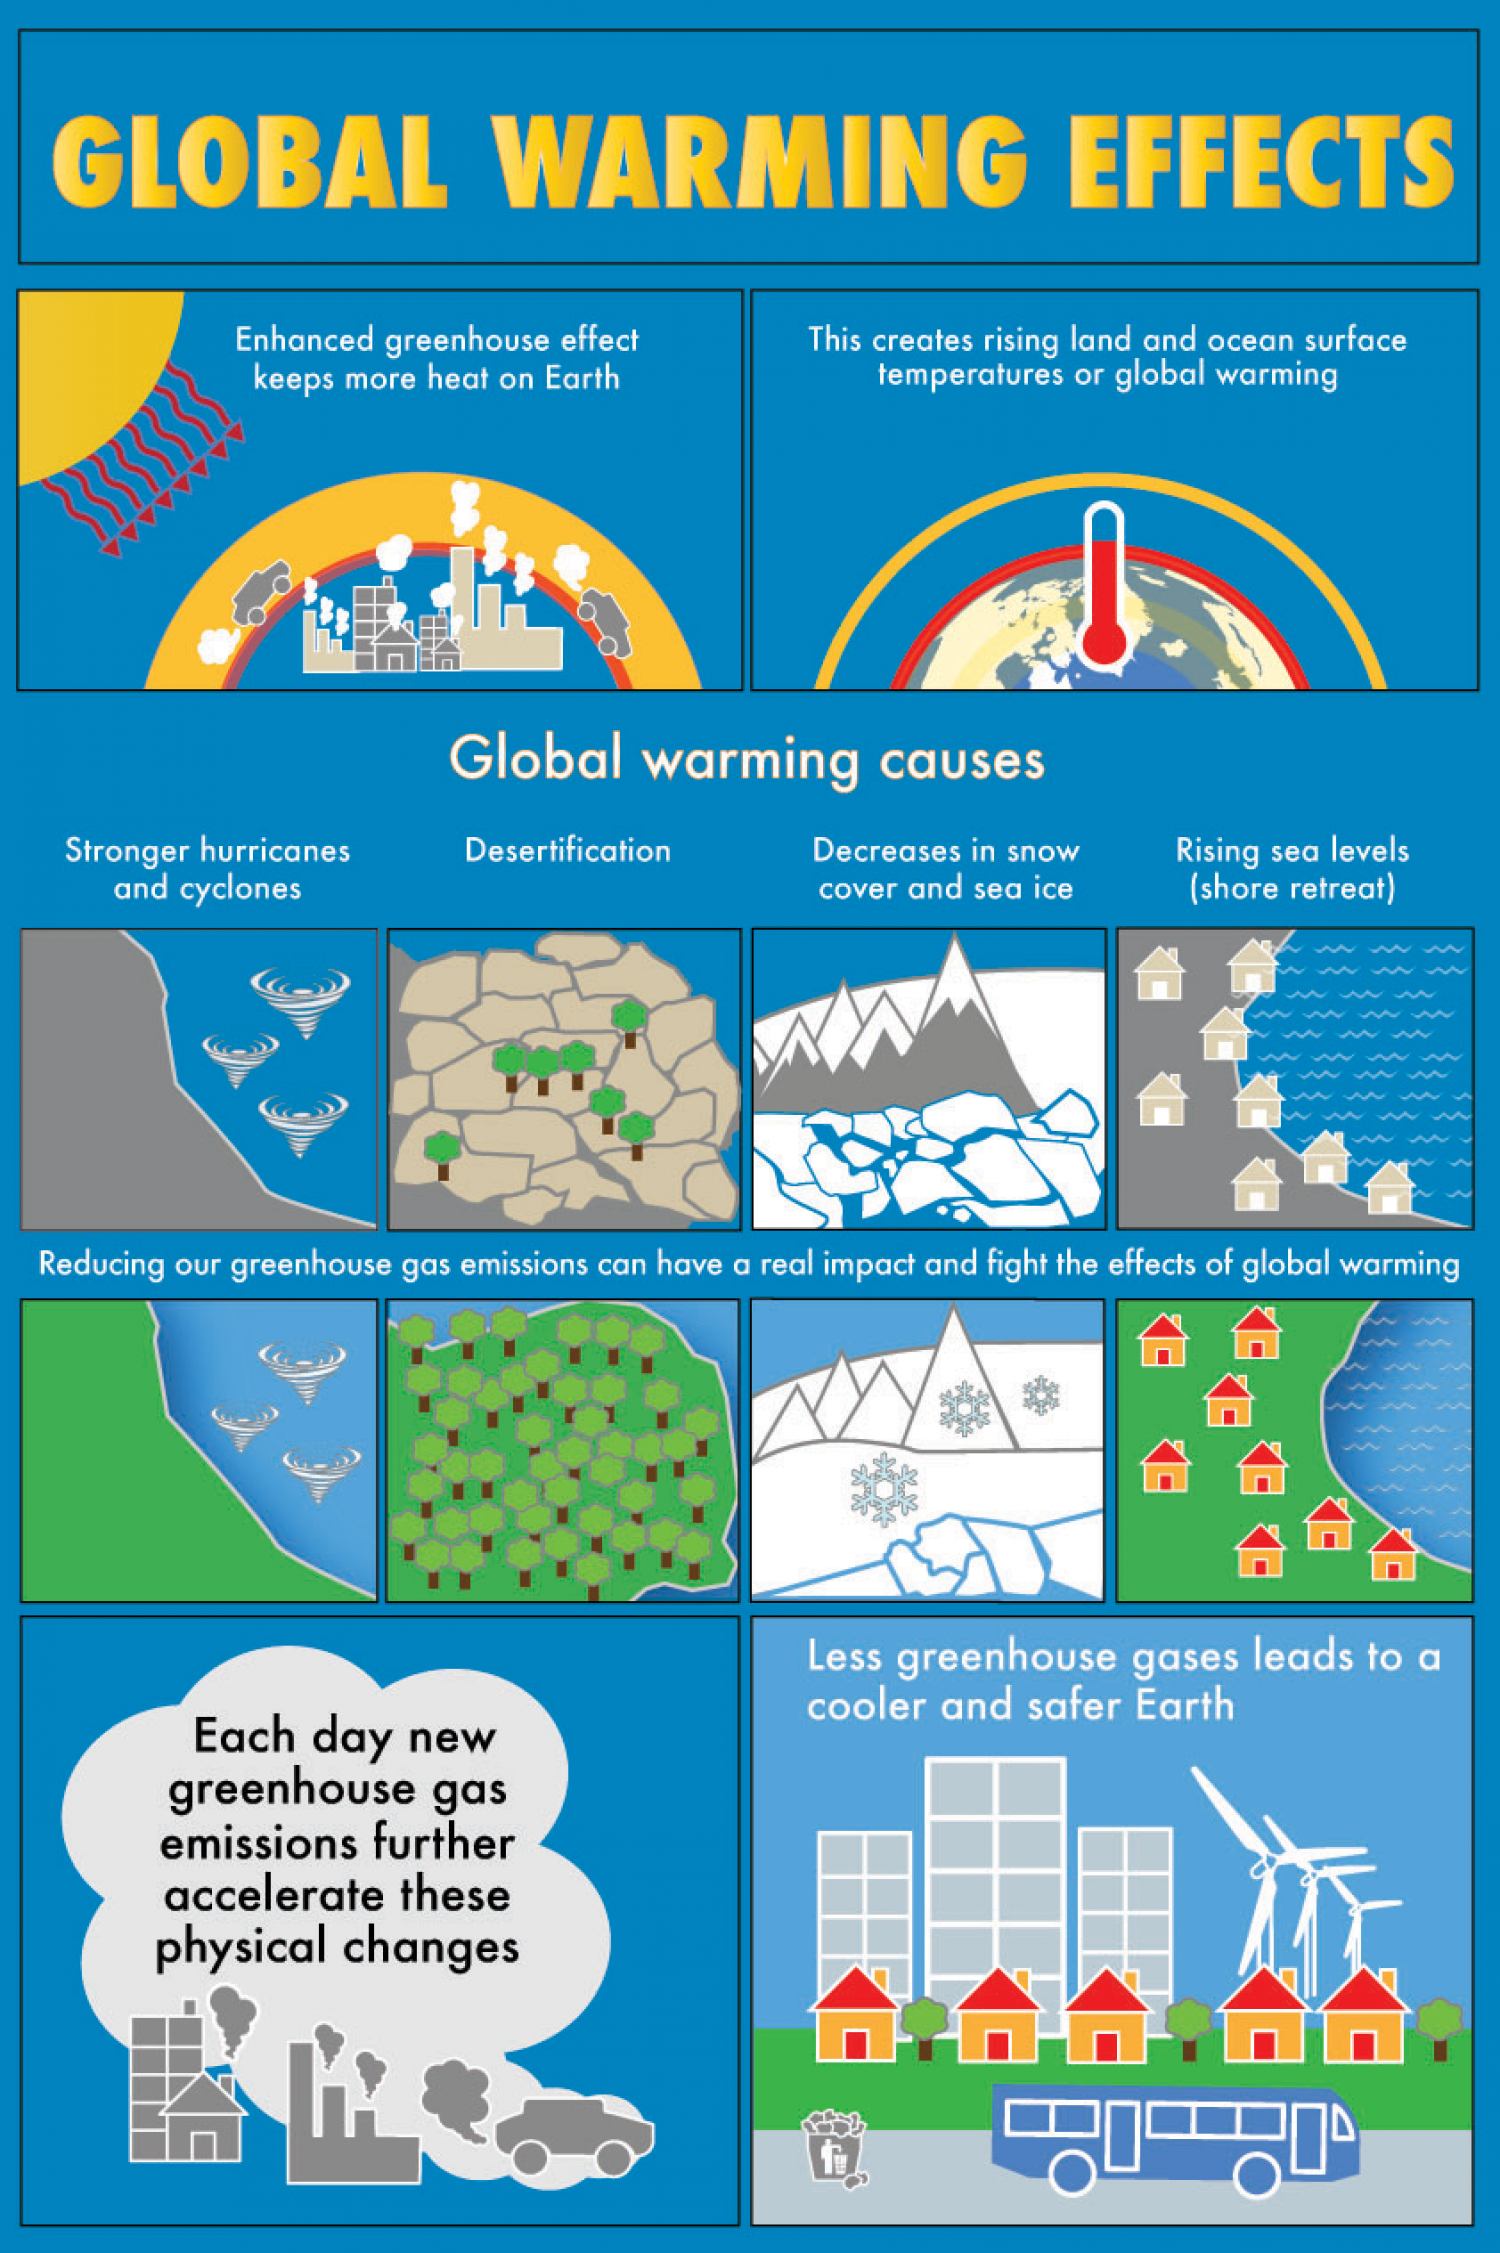 Global warming causes and effects | Visual.ly